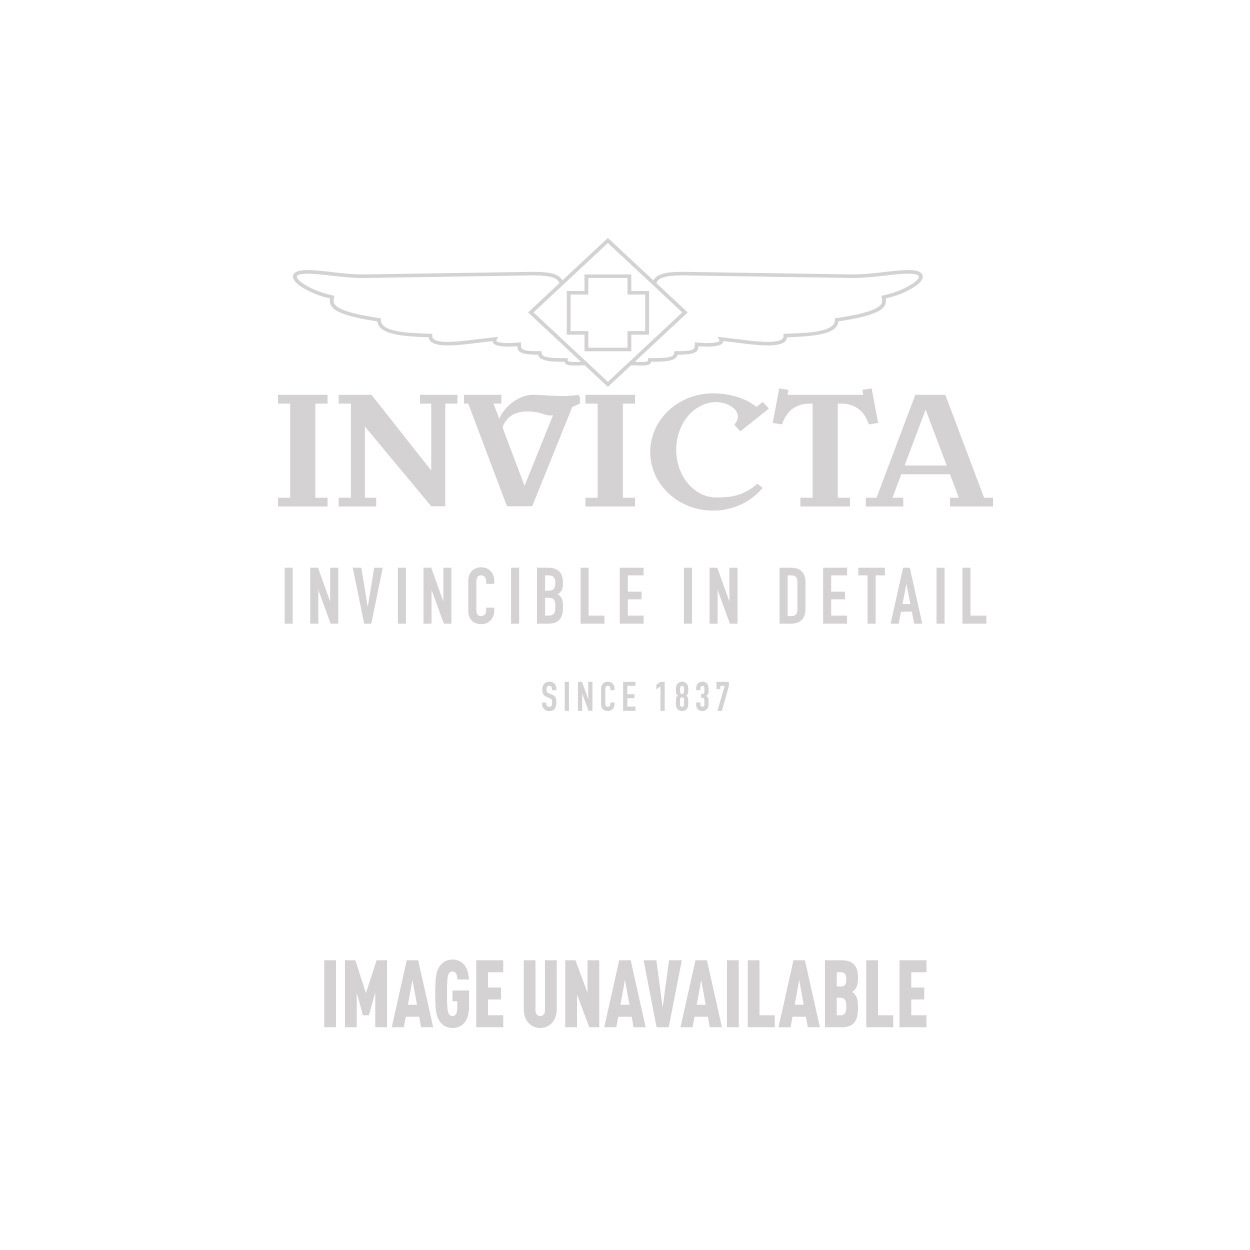 New Invicta Watches - New Arrivals | Official Invicta© Store